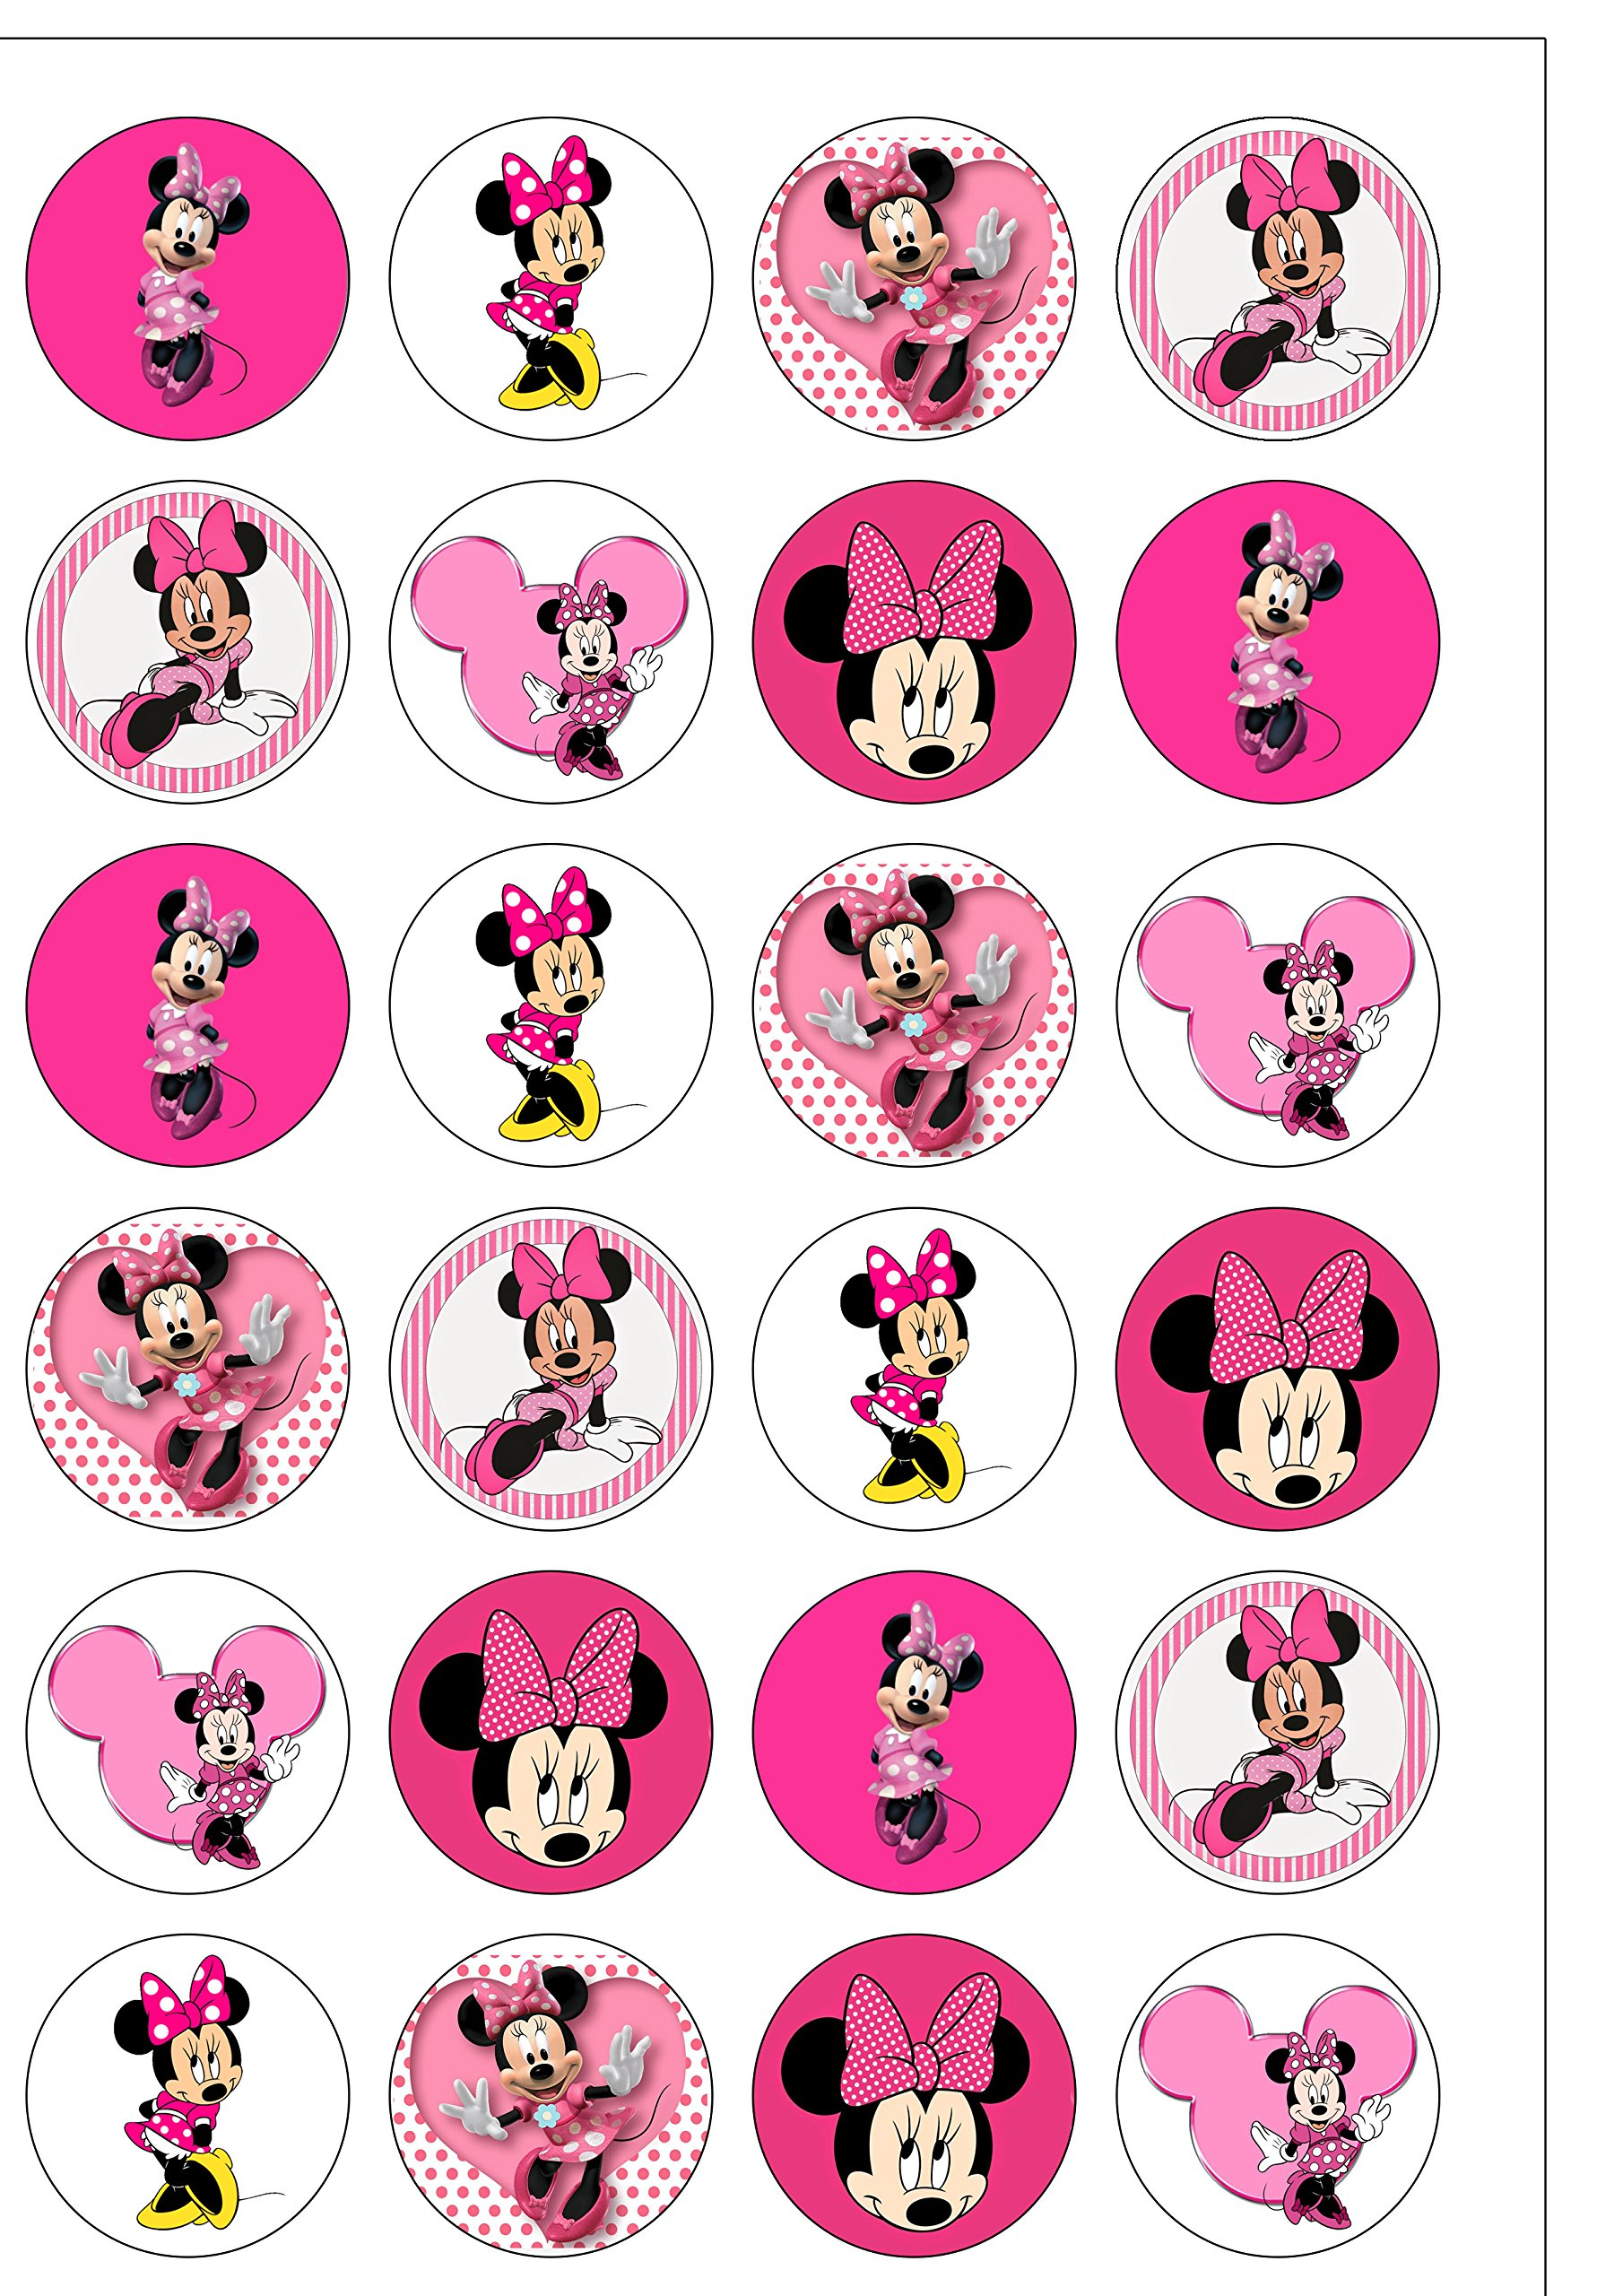 24 Precut 40mm Round Pink Minnie Mouse Edible Wafer Paper Cake Toppers